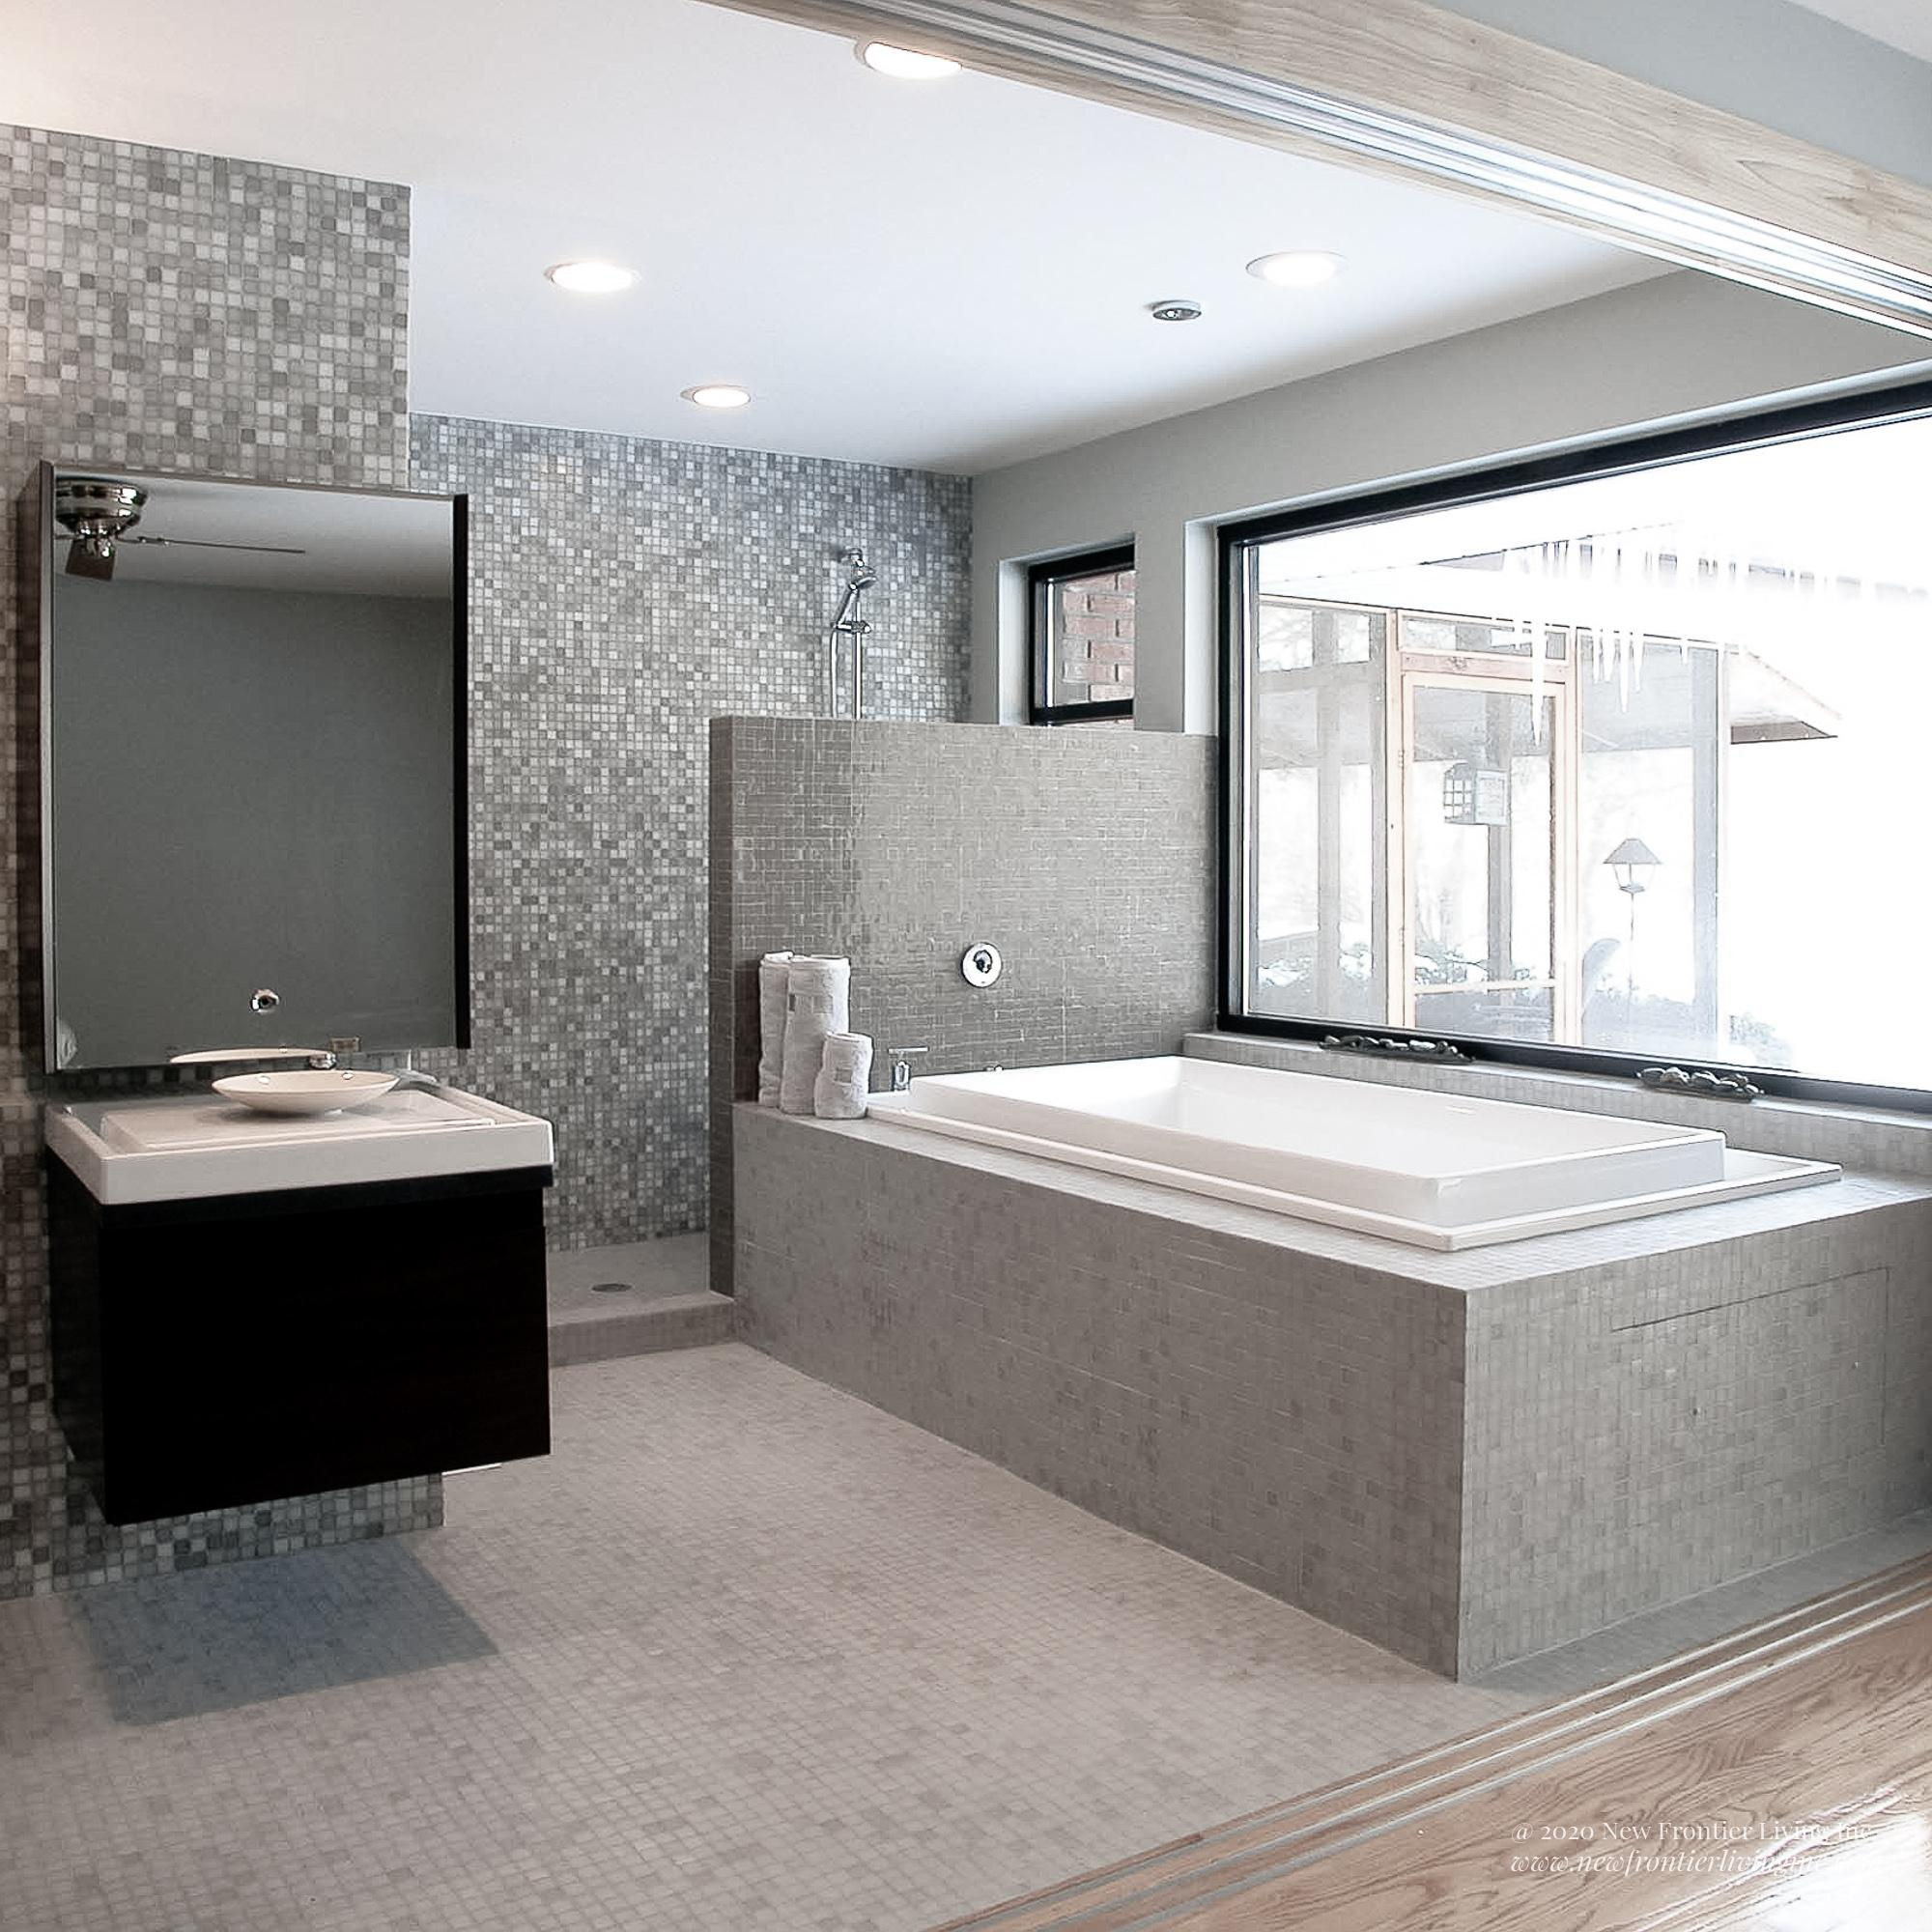 White and gray all ceramic bathroom with a tub and sink and